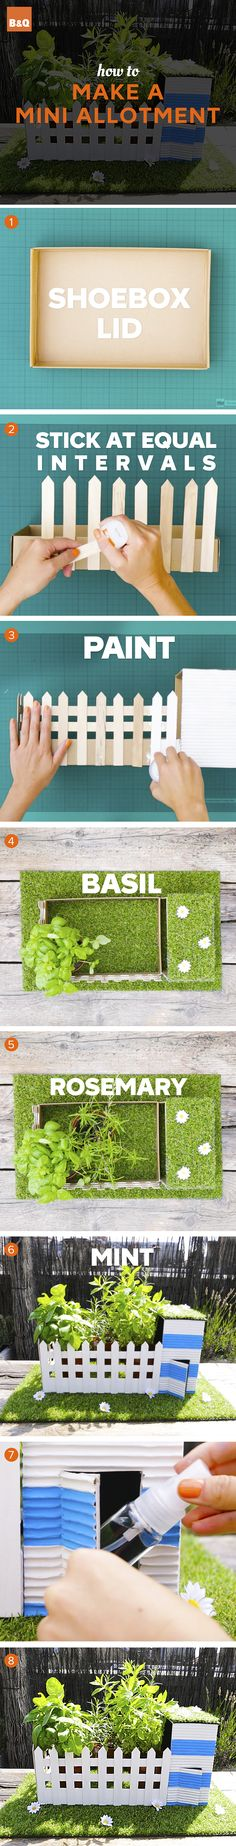 Spark the kids' interest in gardening with this mini allotment project.